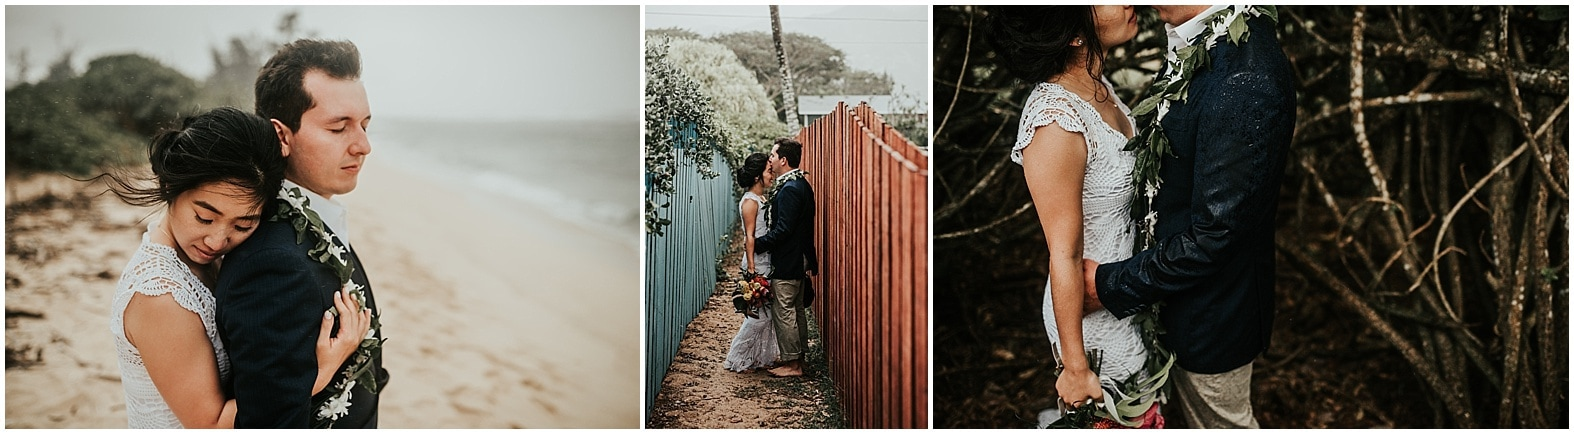 Oahu wedding photographer48